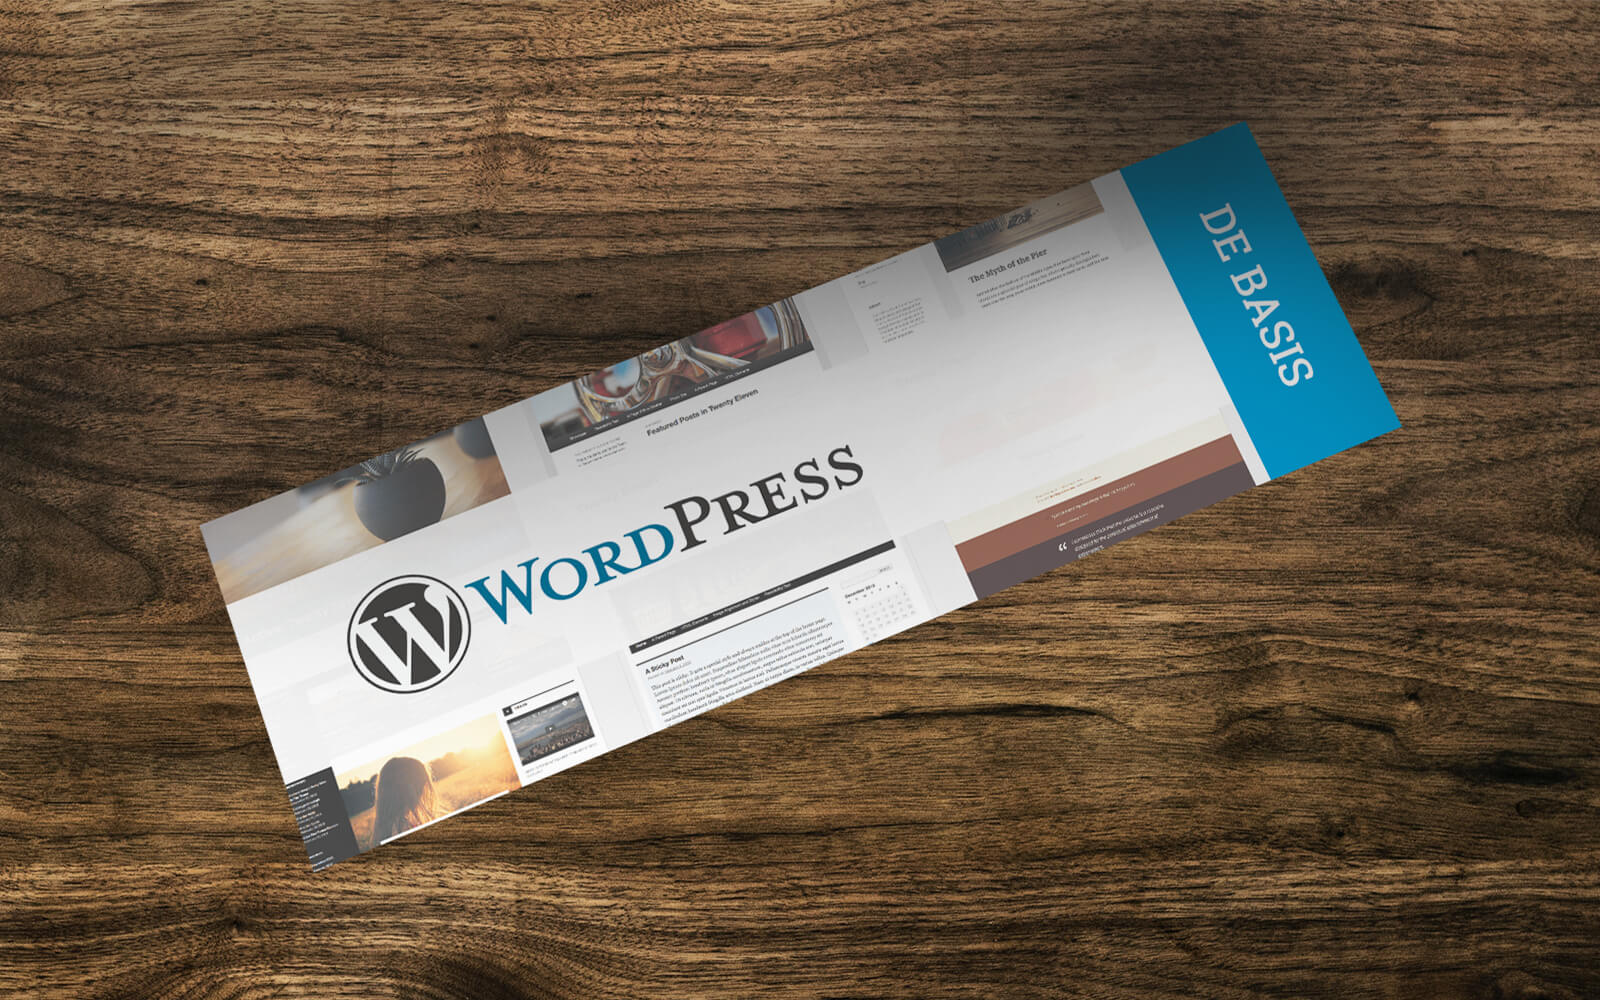 Je eigen WordPress-website maken: de basis